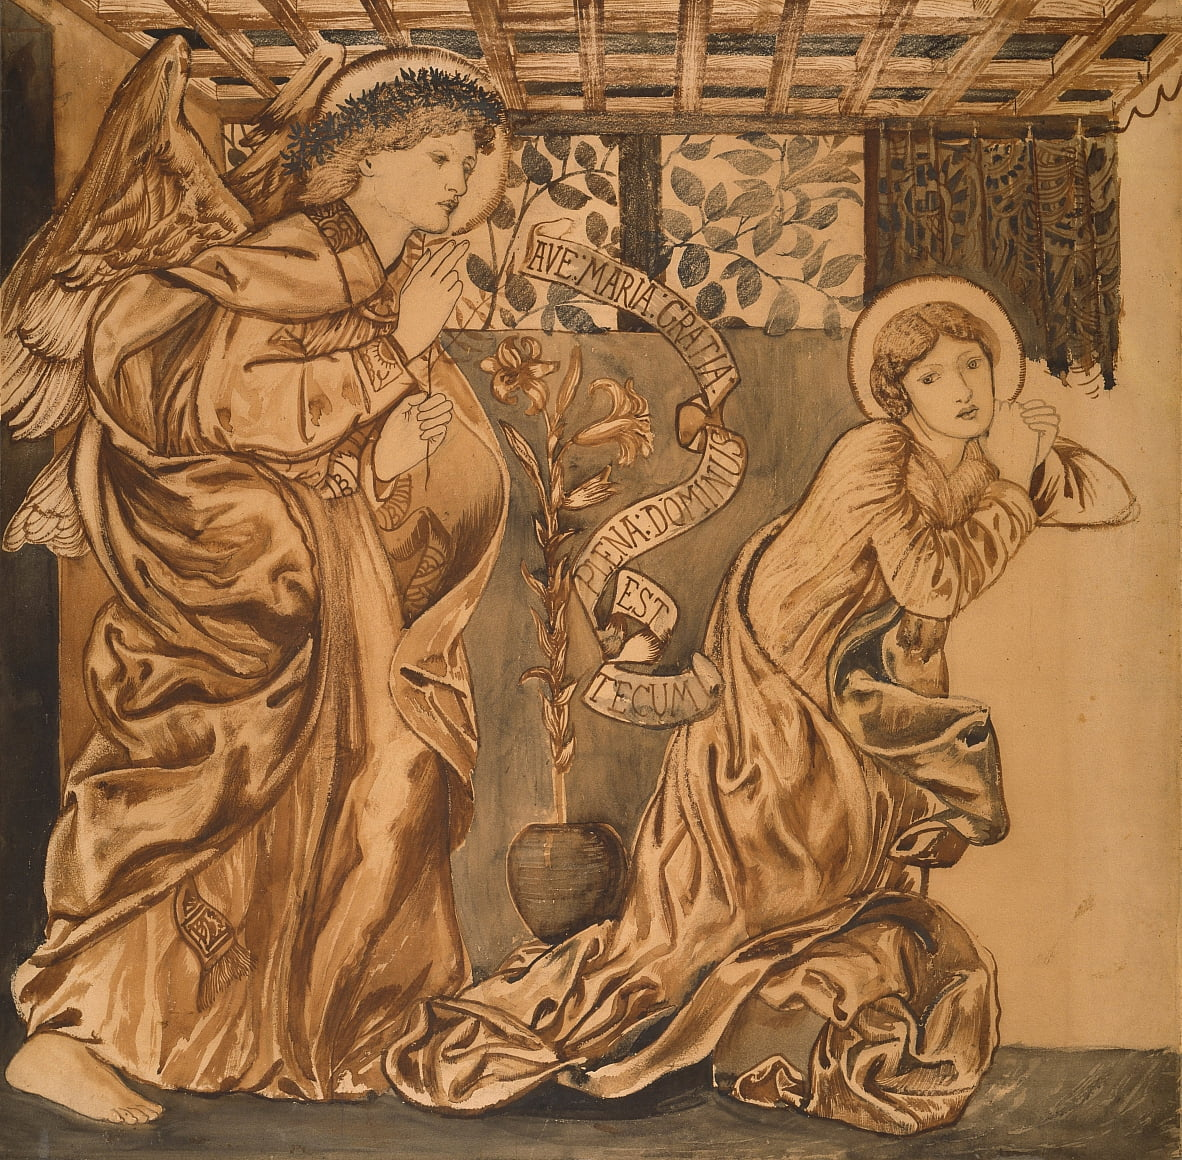 The Annunciation by Edward Burne Jones